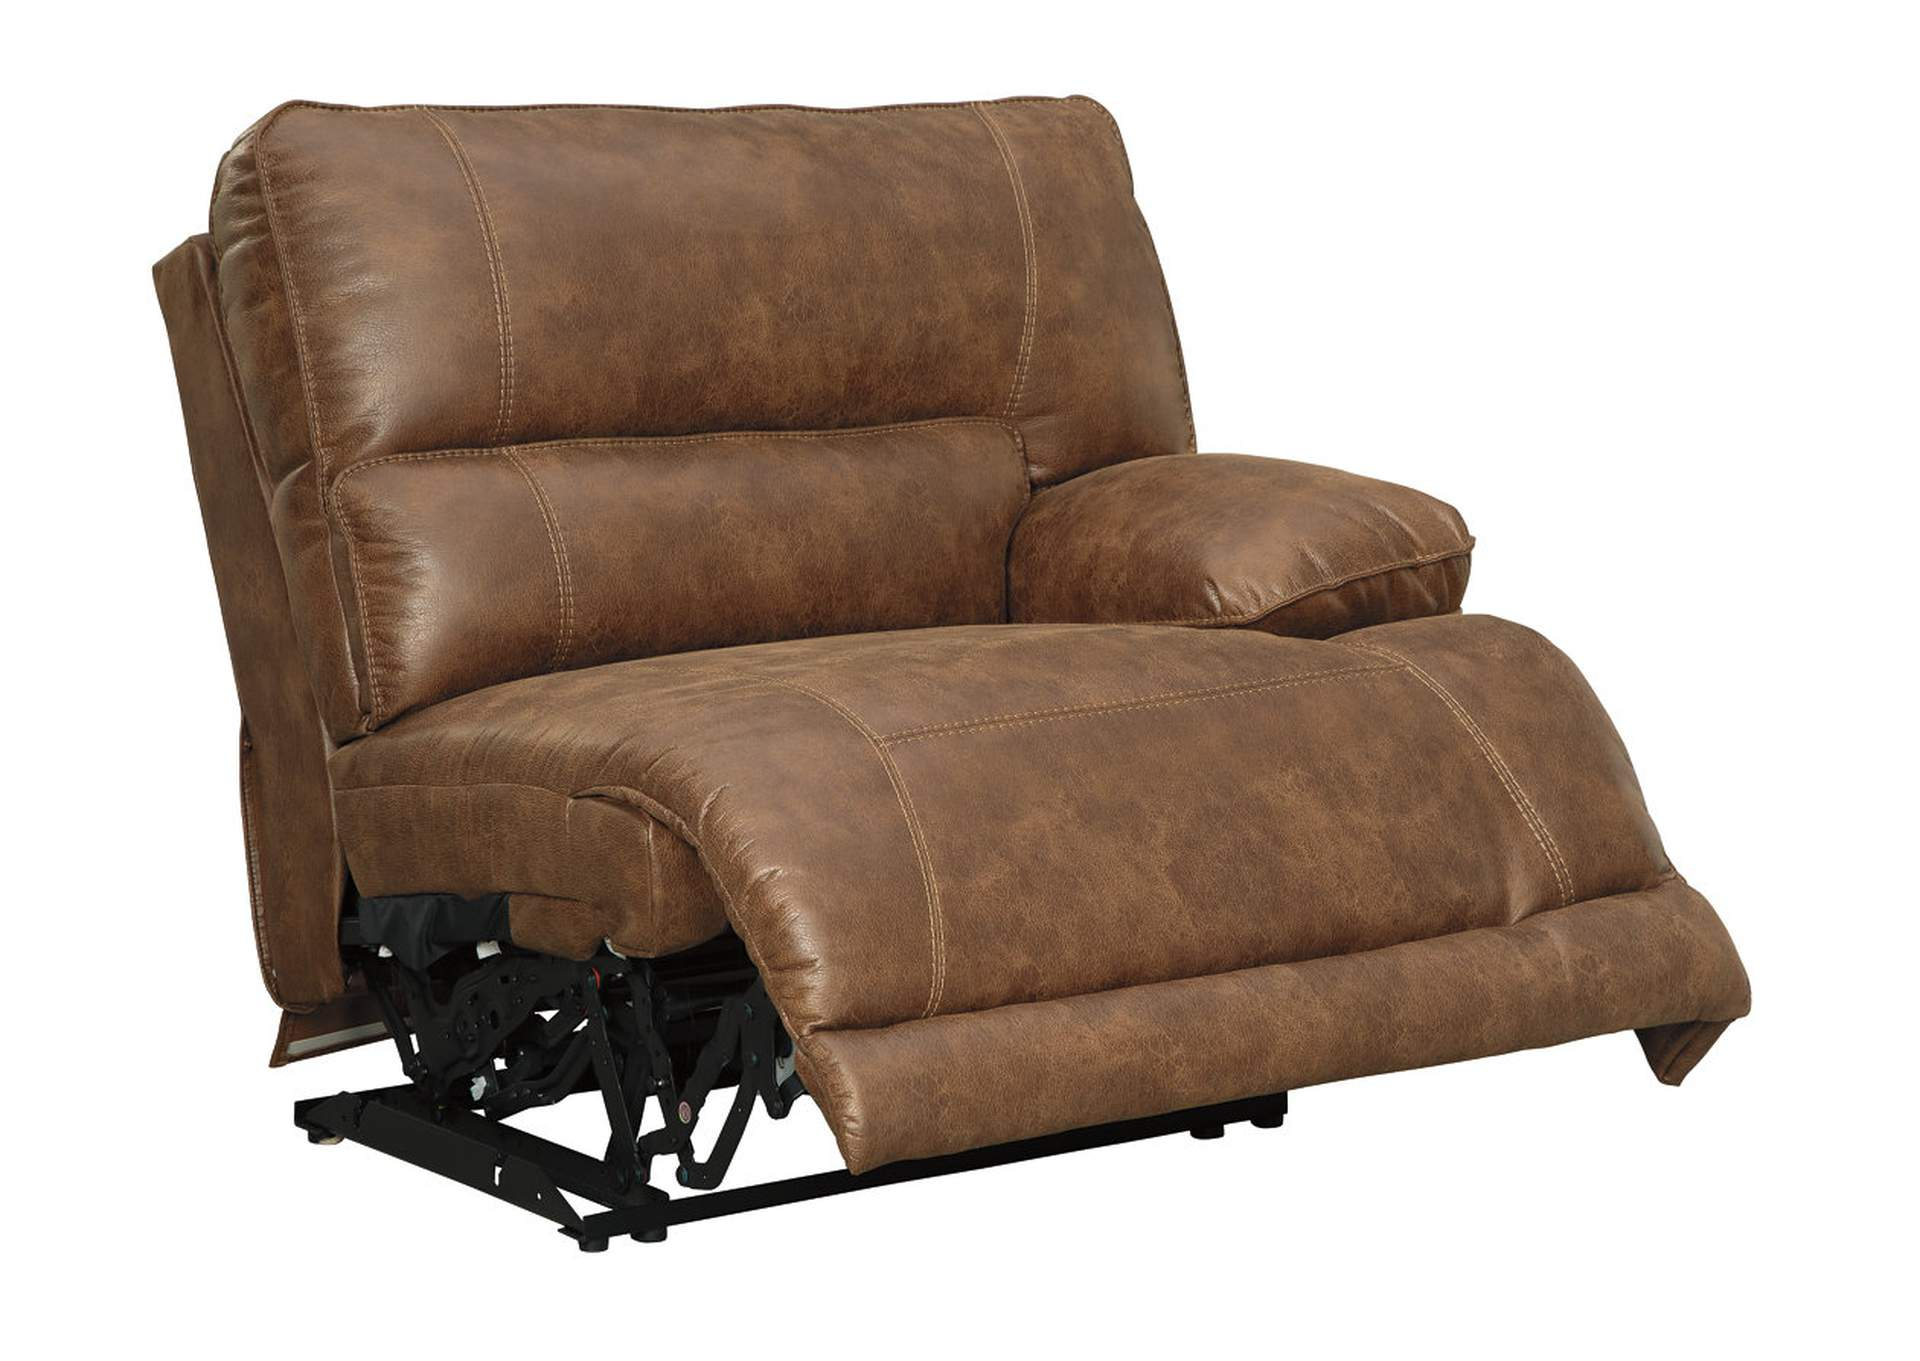 Thurles Right-Arm Facing Power Recliner,Signature Design By Ashley